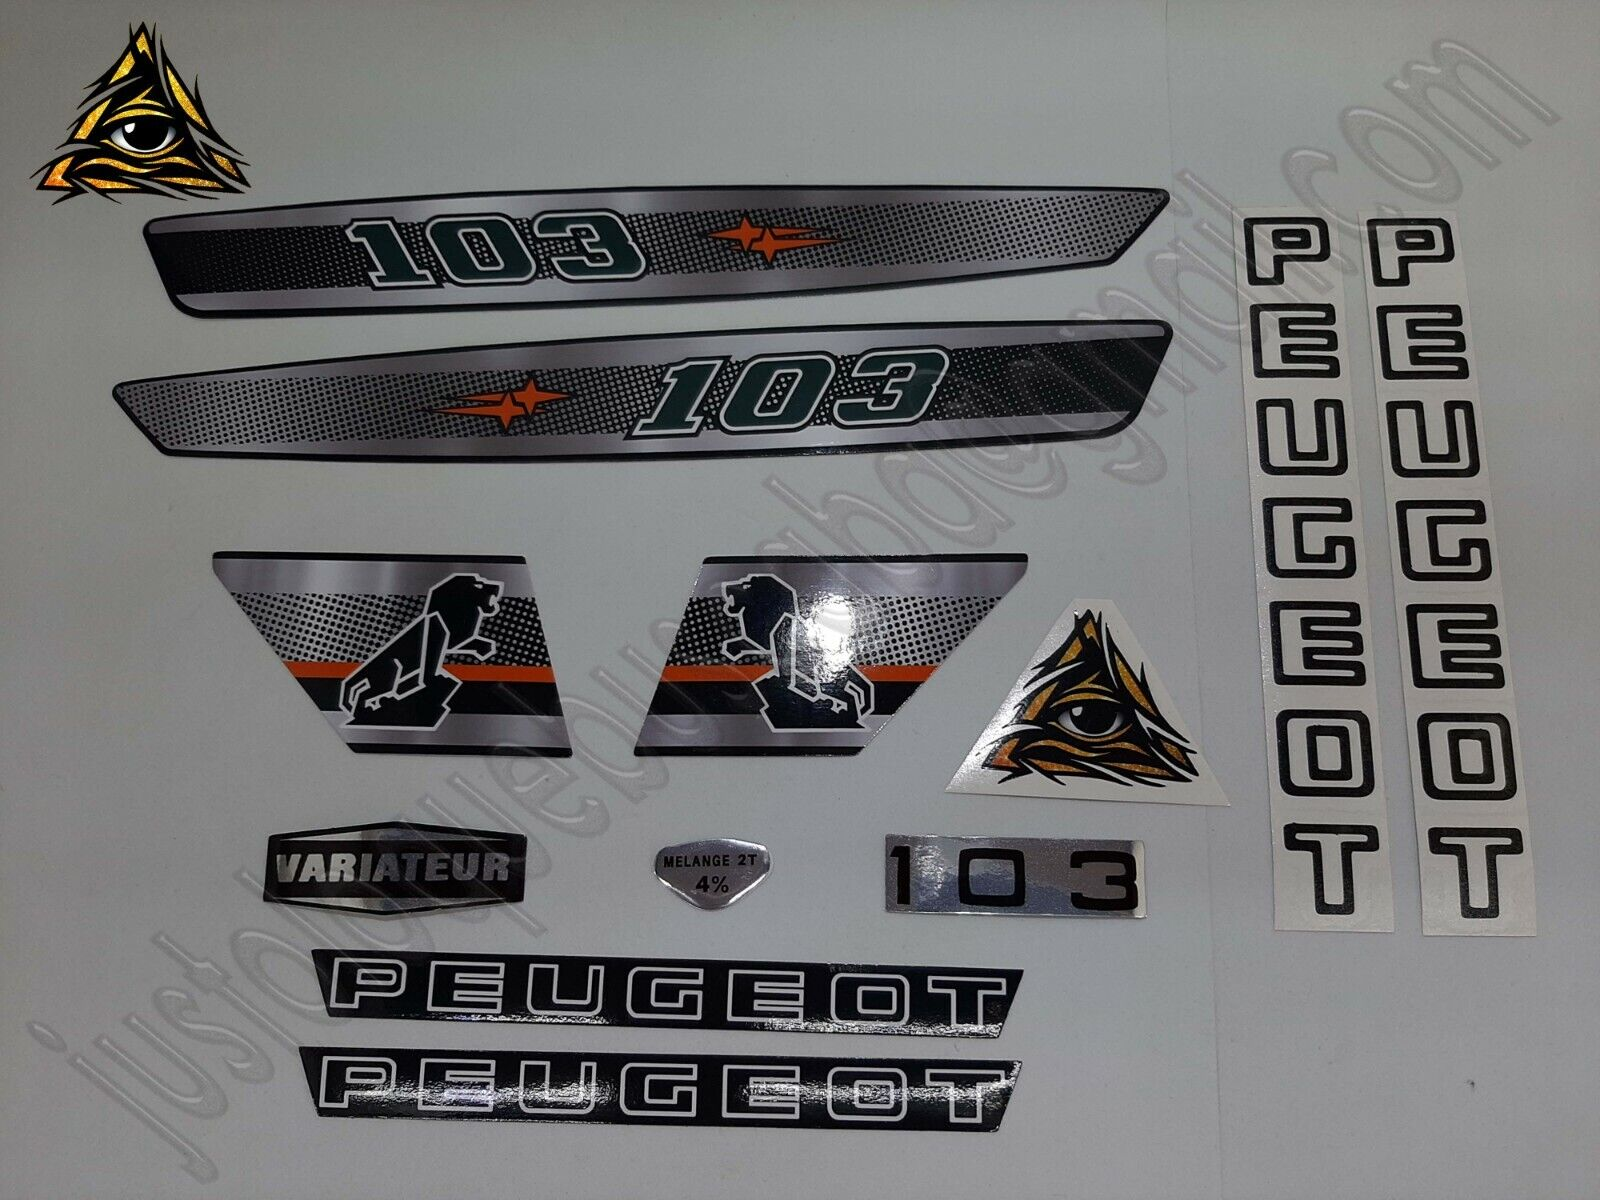 Autocollant stickers Peugeot 103 MVL Metallic Effect Gris